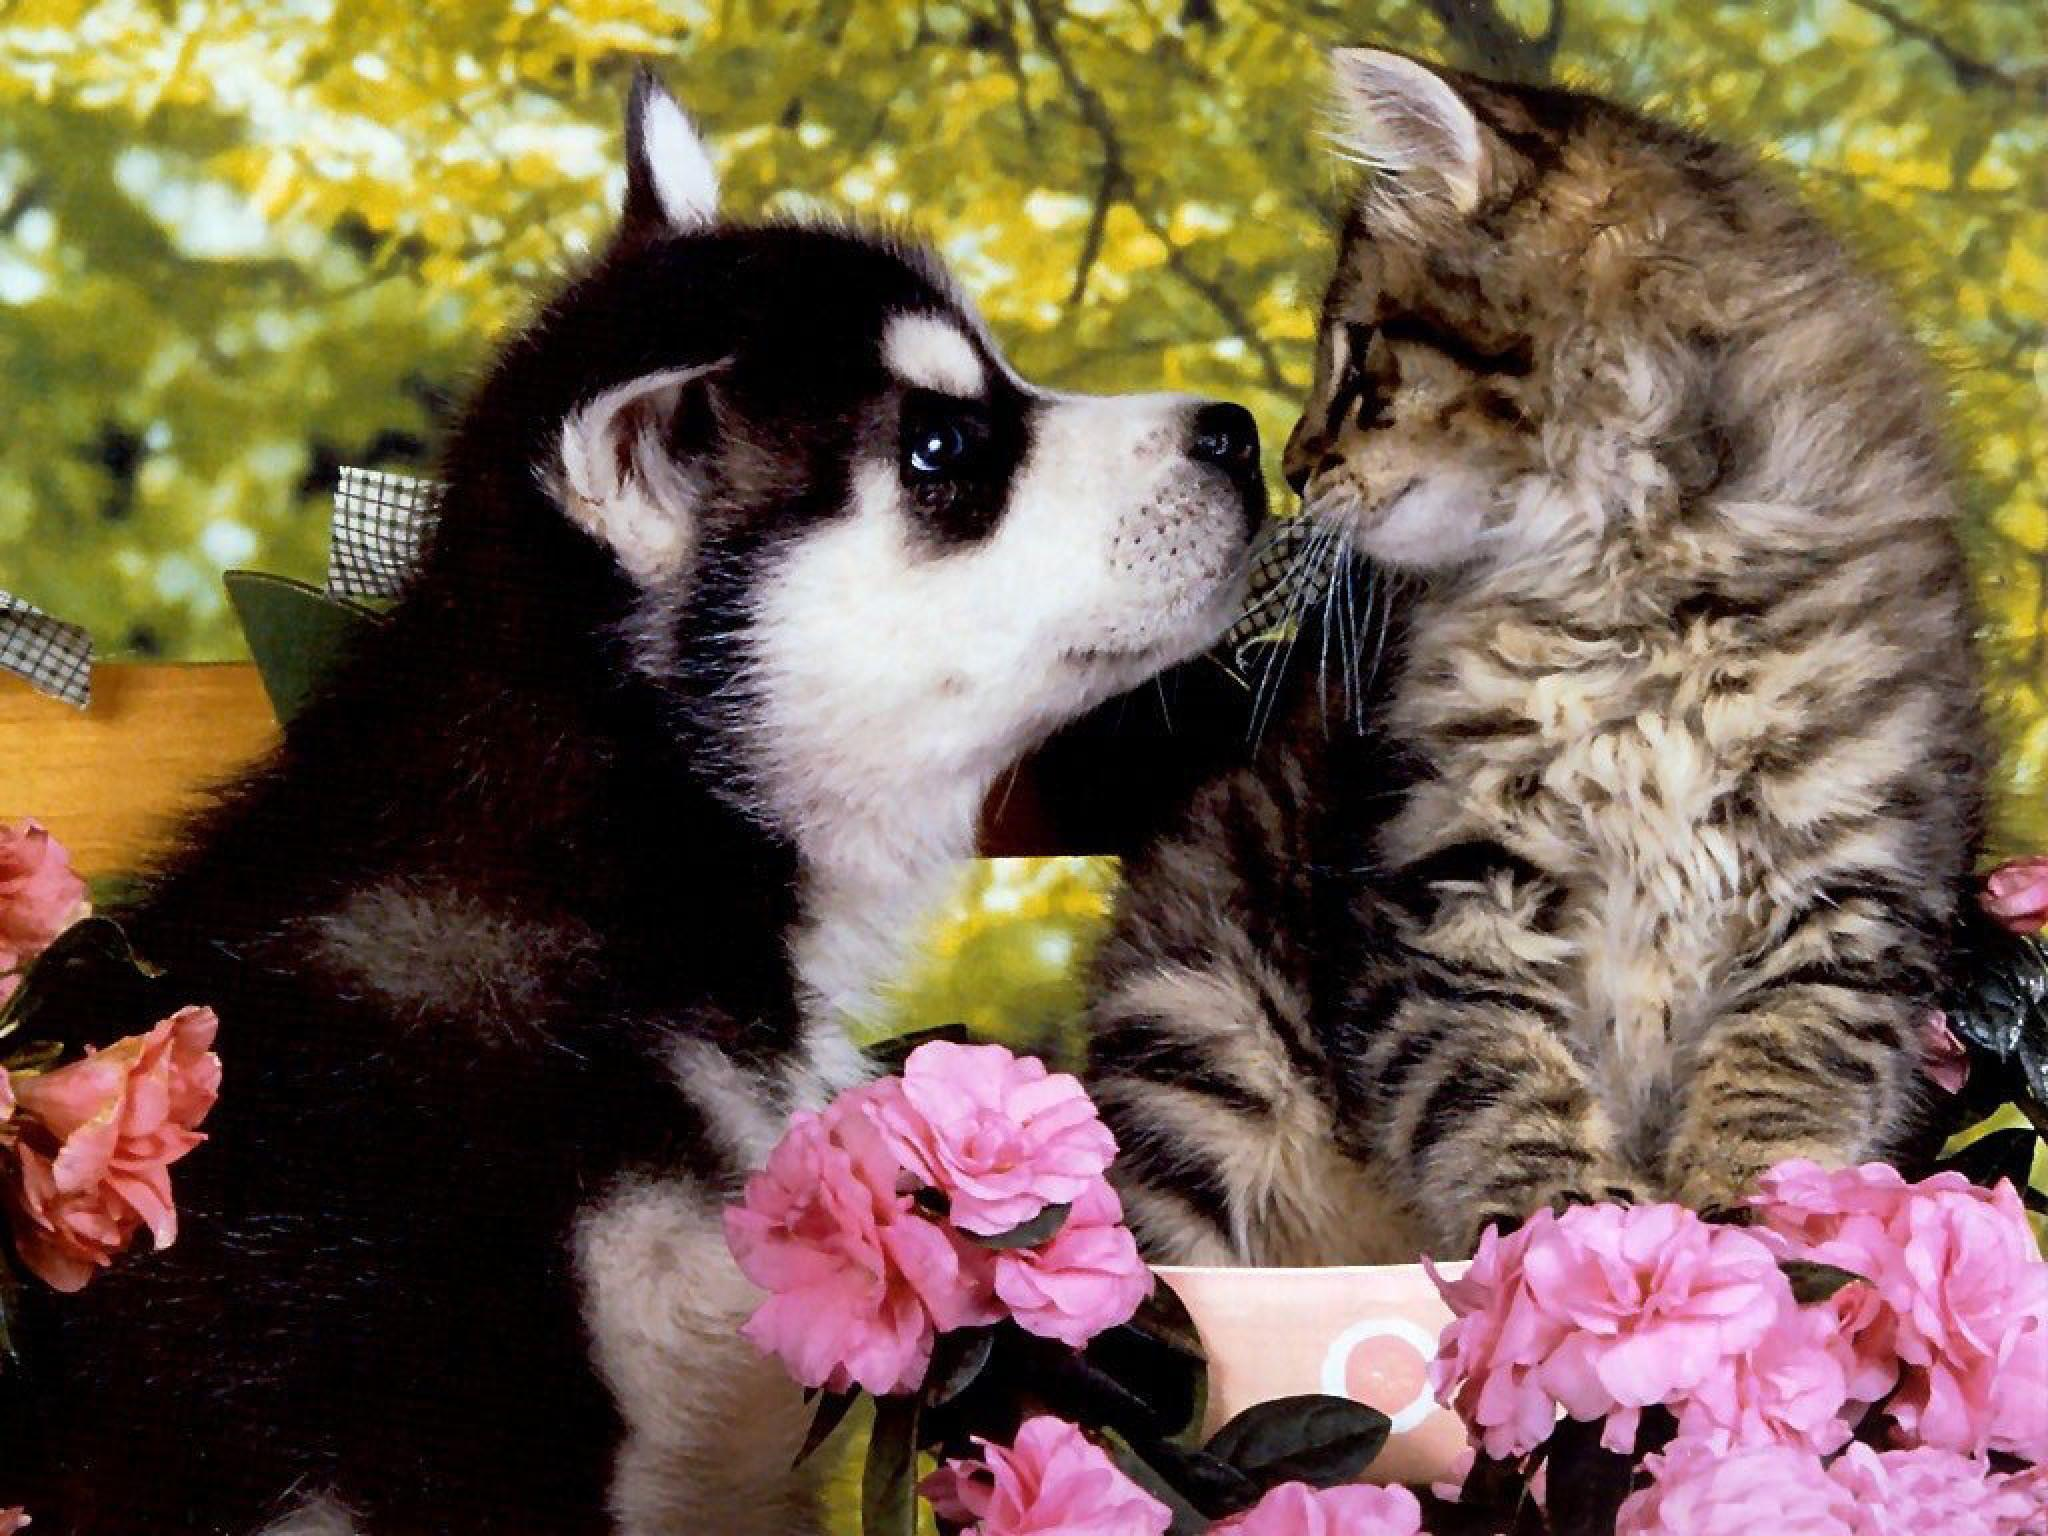 puppies and kittens wallpapers